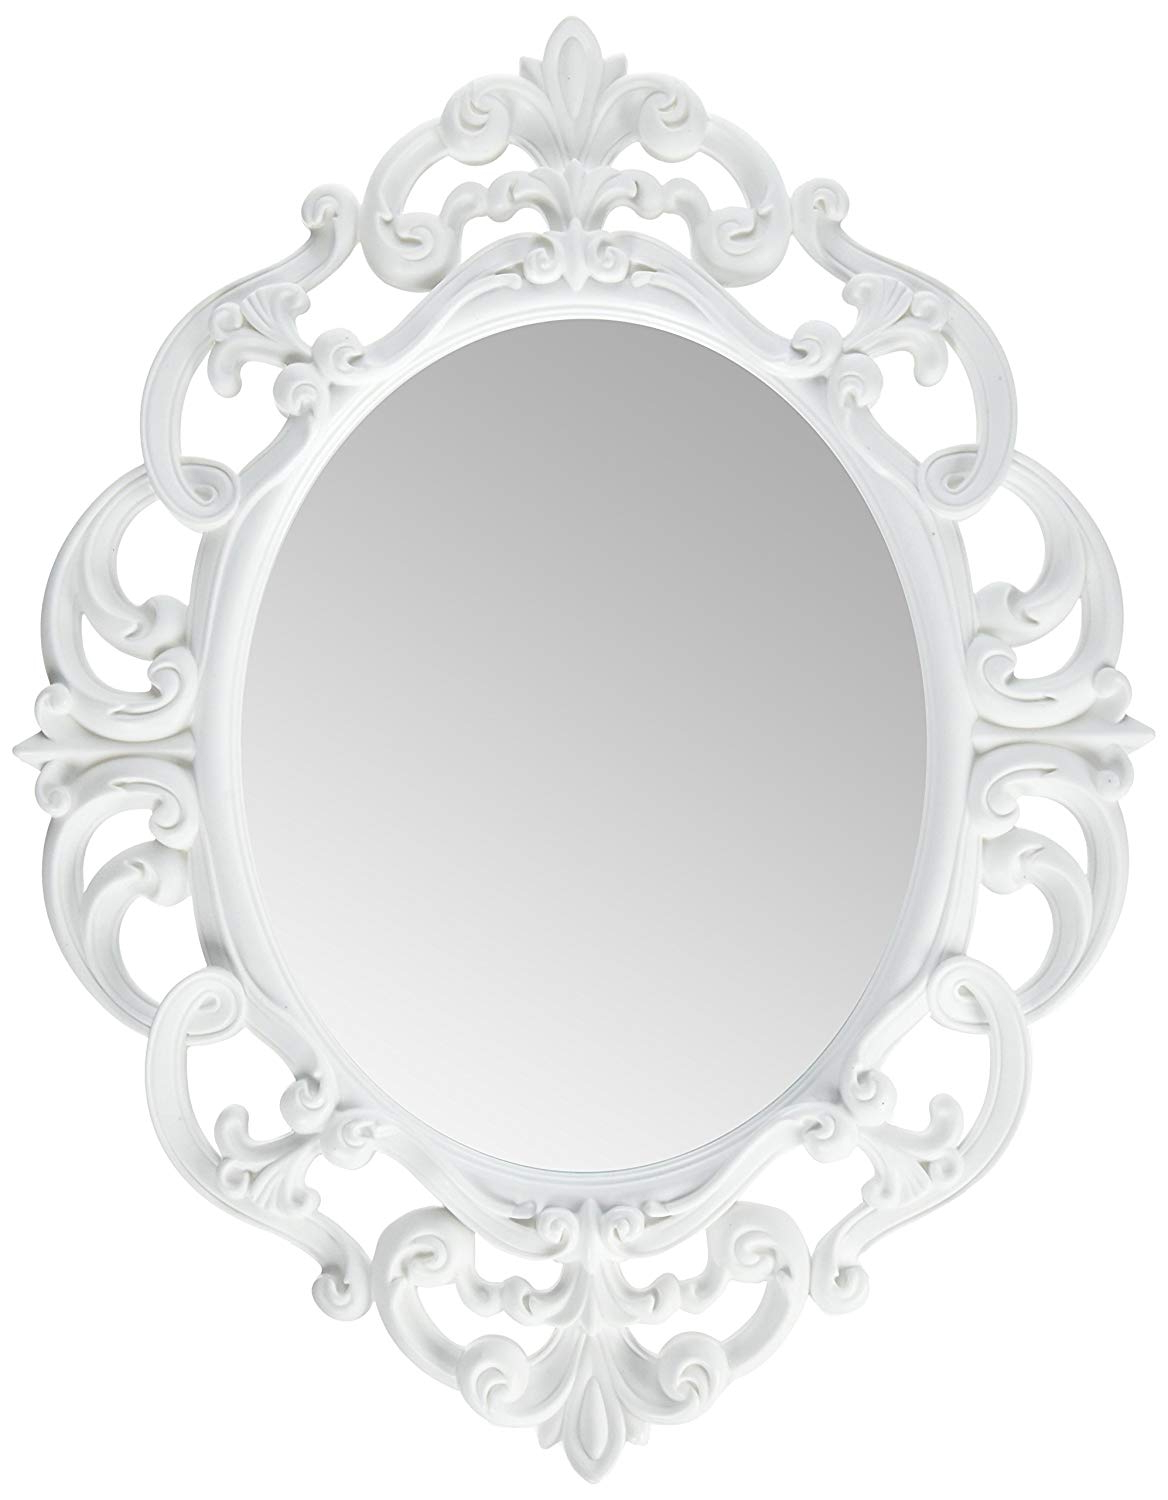 Kole White Oval Vintage Wall Mirror Intended For Newest Plastic Wall Mirrors (Gallery 1 of 20)